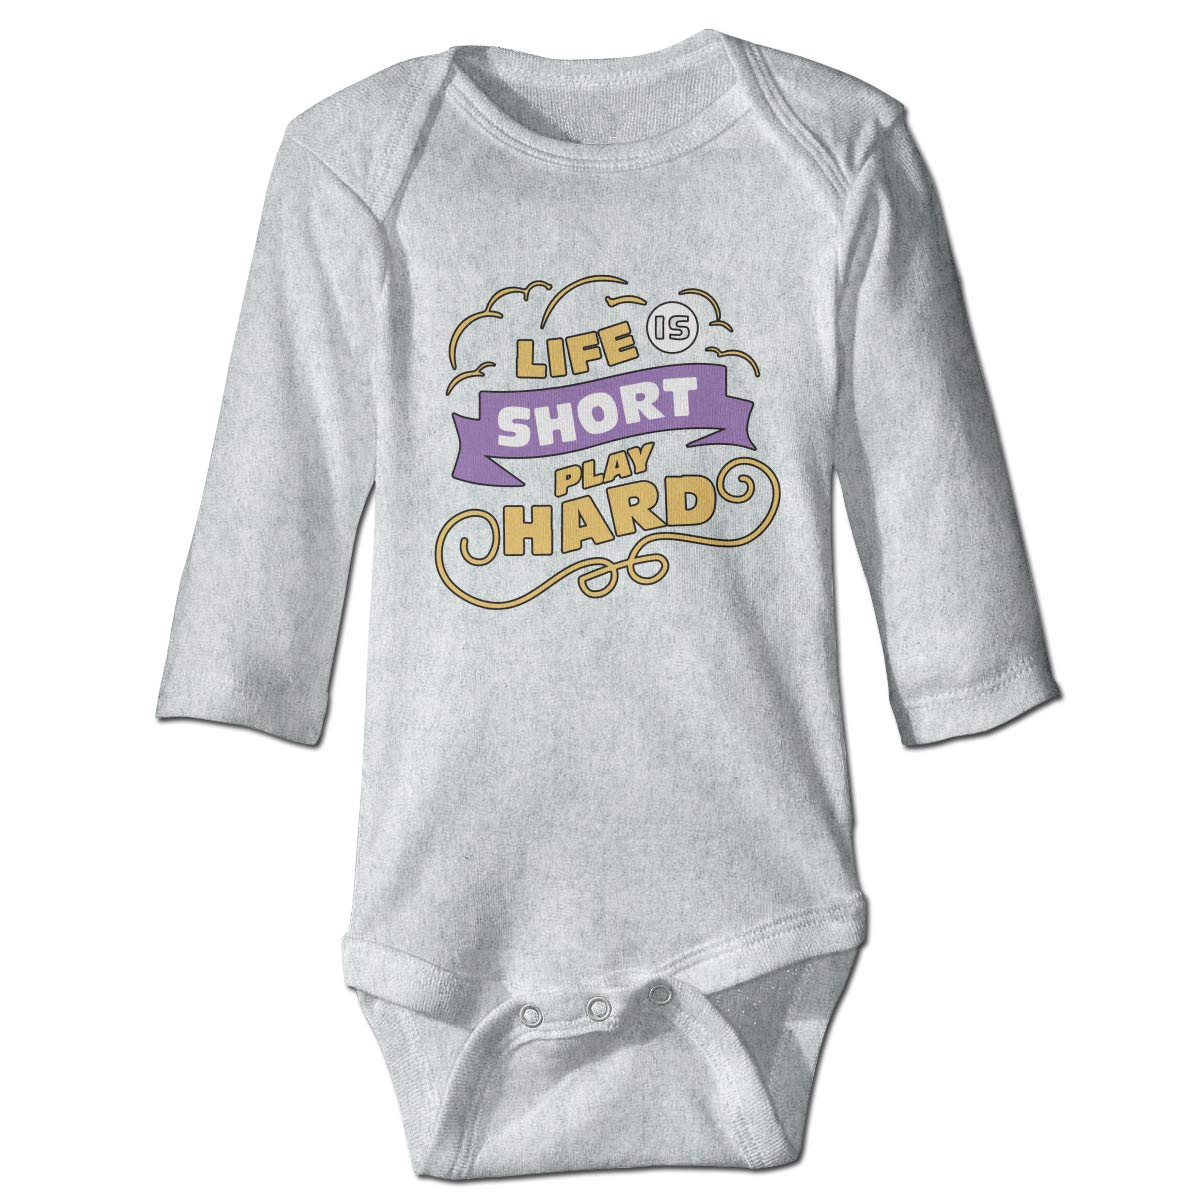 A14UBP Baby Infant Toddler Romper Bodysuit Infant Life is Short Play Hard1 Long Sleeve Funny Baby Clothes